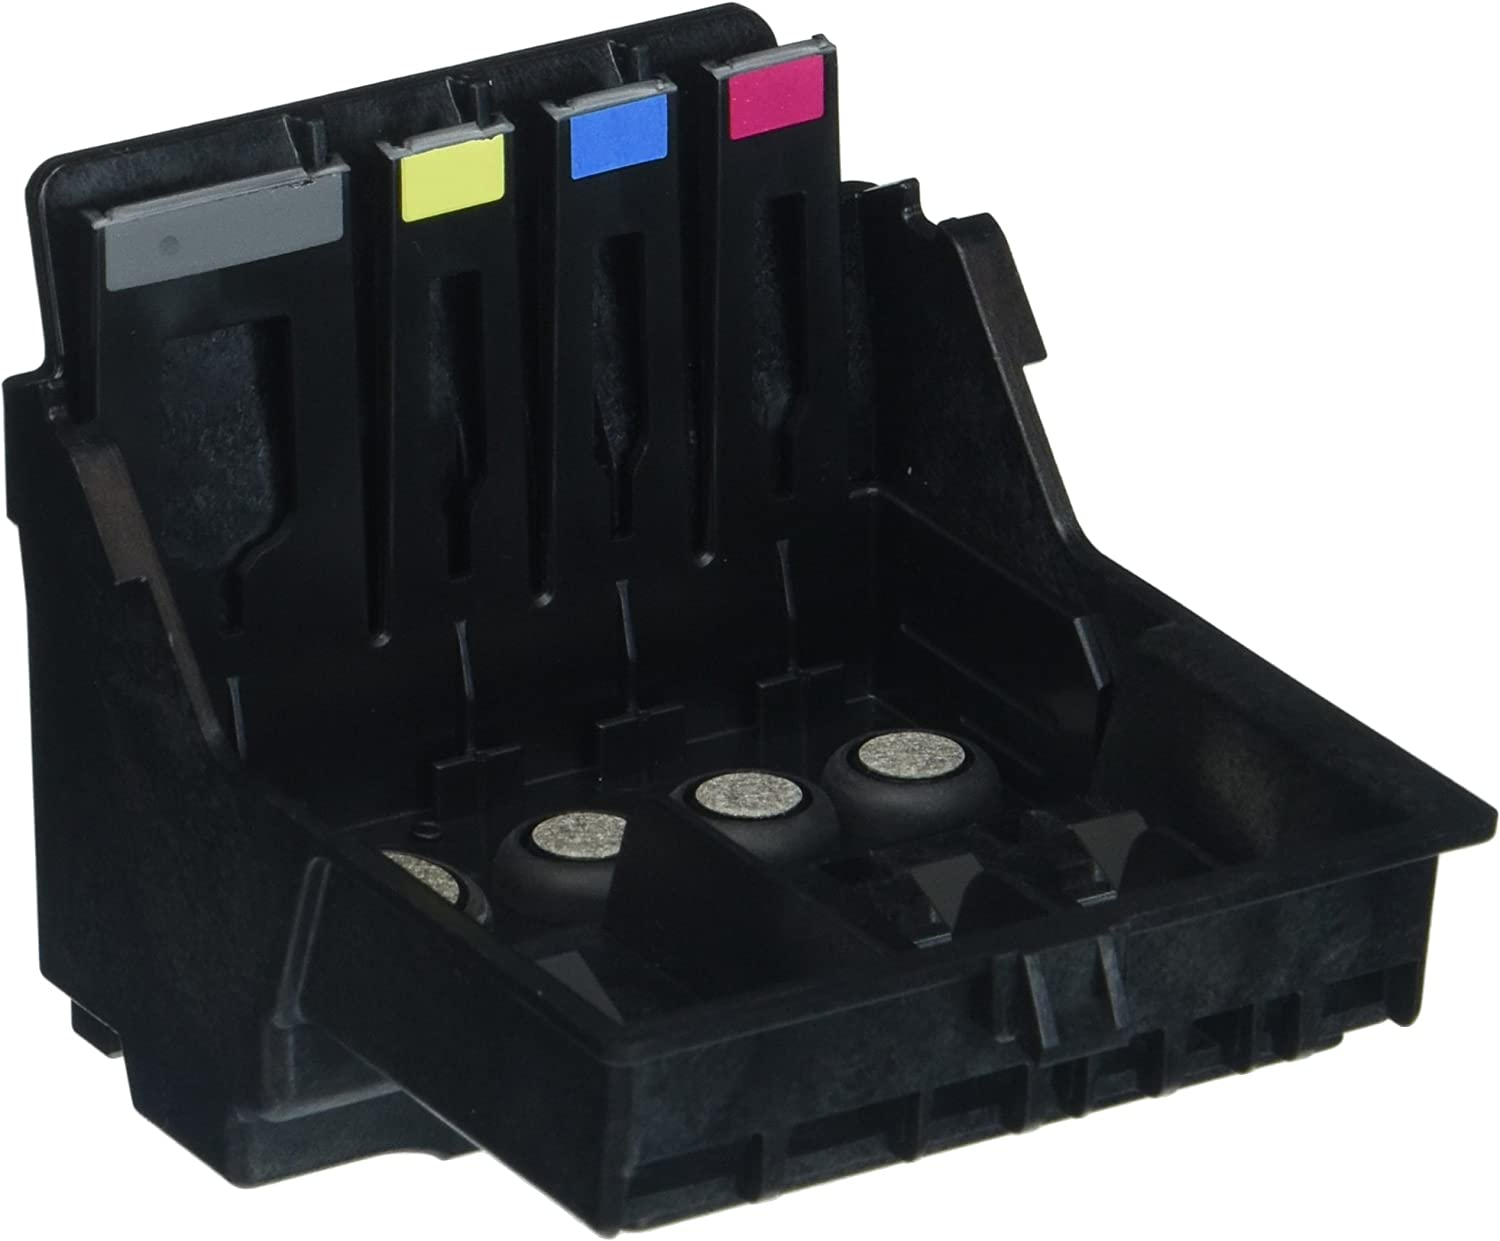 Primera 53471 Replaceable Print Head for Bravo 4100 Series Disc Publishers